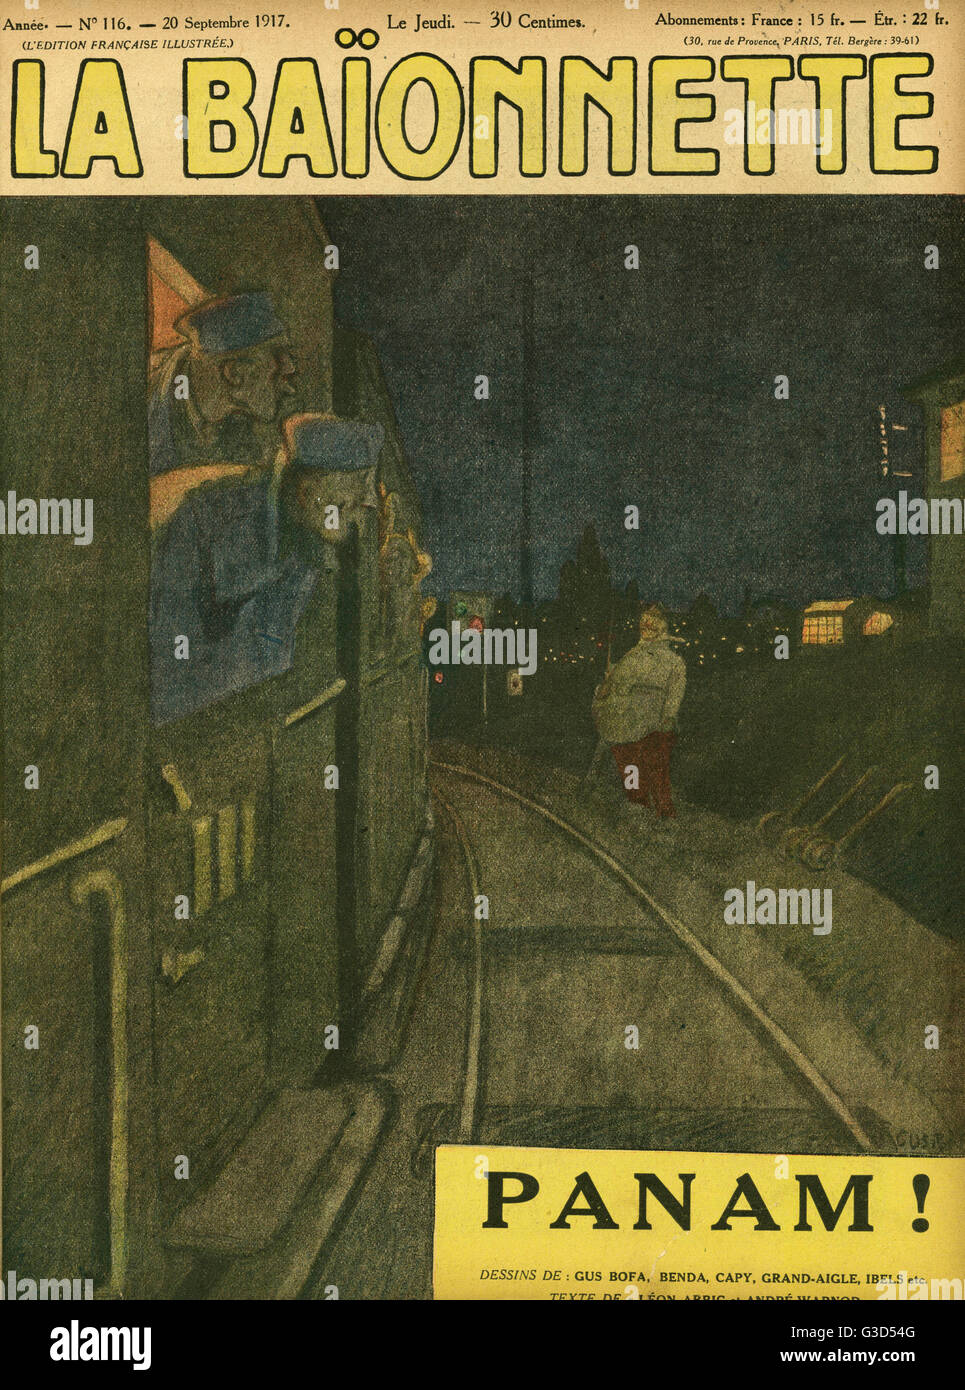 Front cover design for La Baionnette, an issue focusing on Paris (nicknamed Panam or Paname). Showing French soldiers - Stock Image